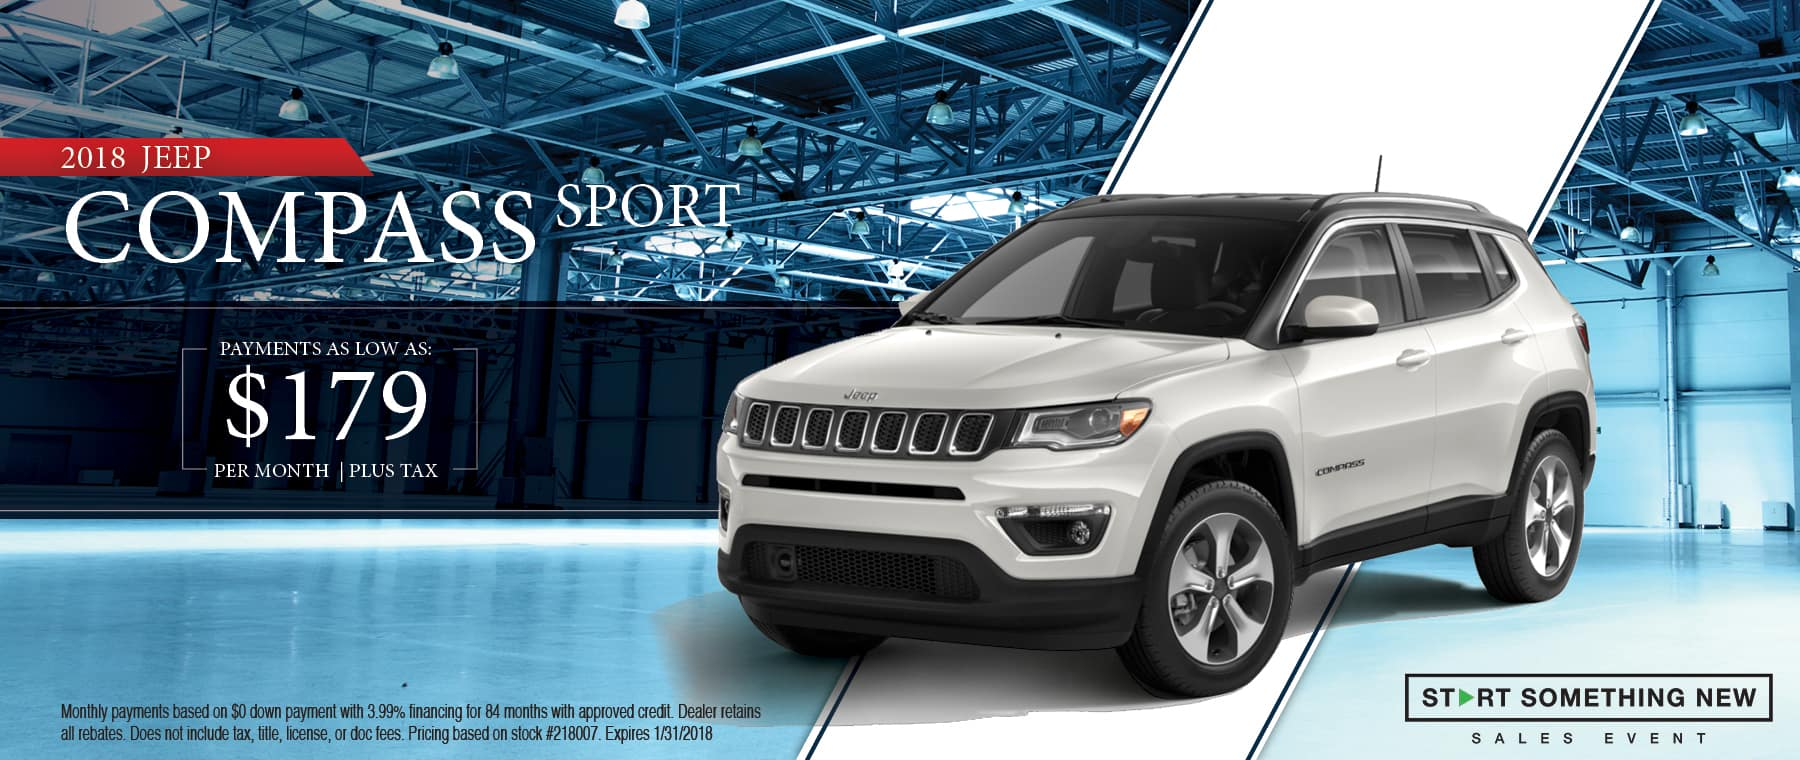 2018 Jeep Compass Sport Special in Thomson, GA